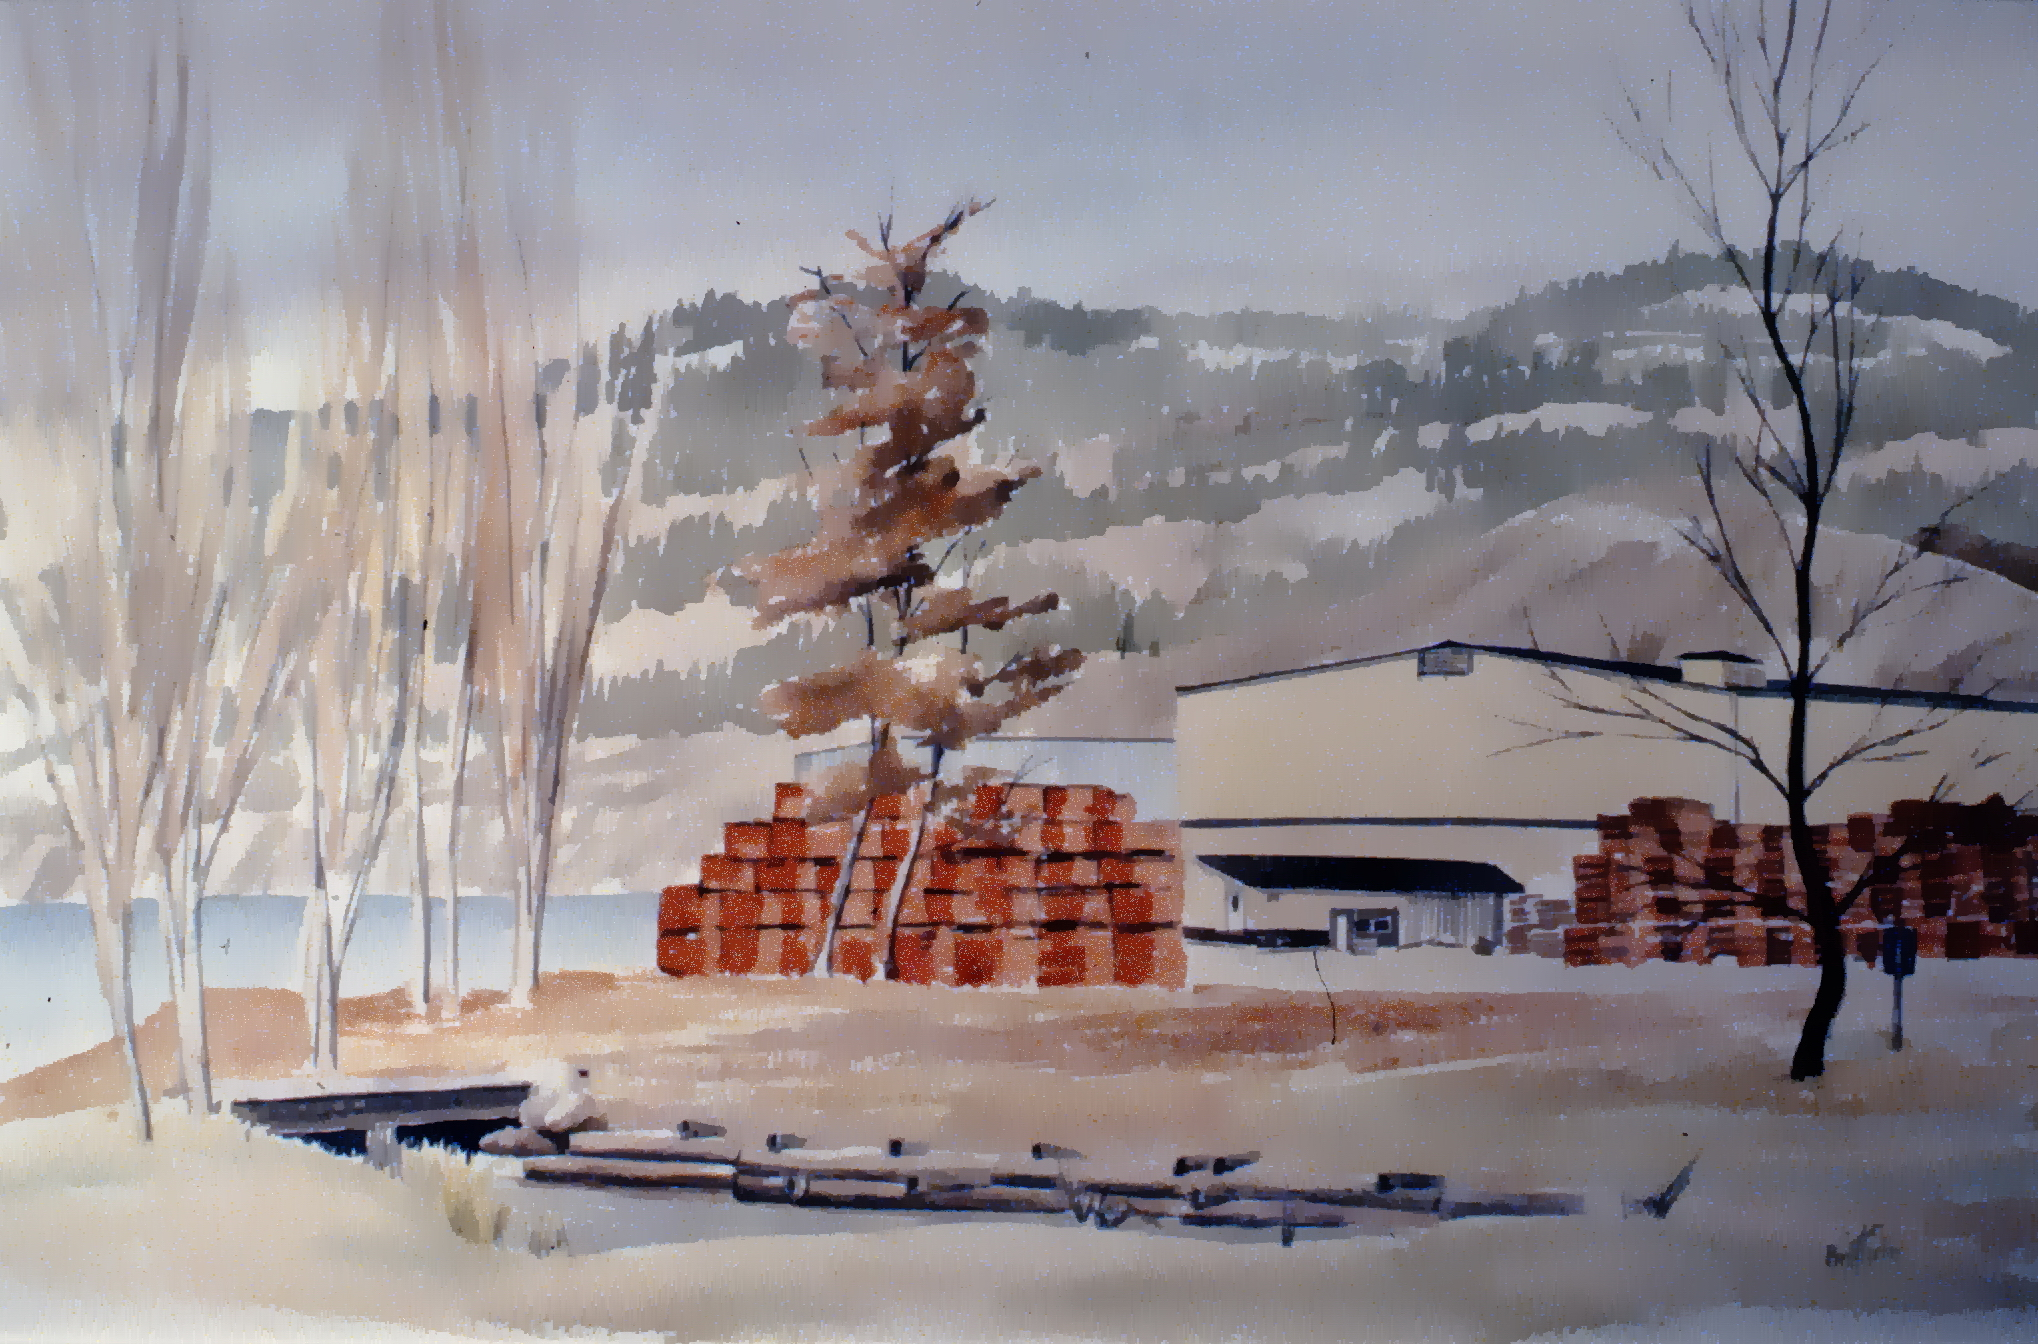 """Art Gallery Site in Winter , c. 1985, Herb Brittain, watercolour on paper 14"""" x 22"""", 1986.05.02. Gift of the artist."""